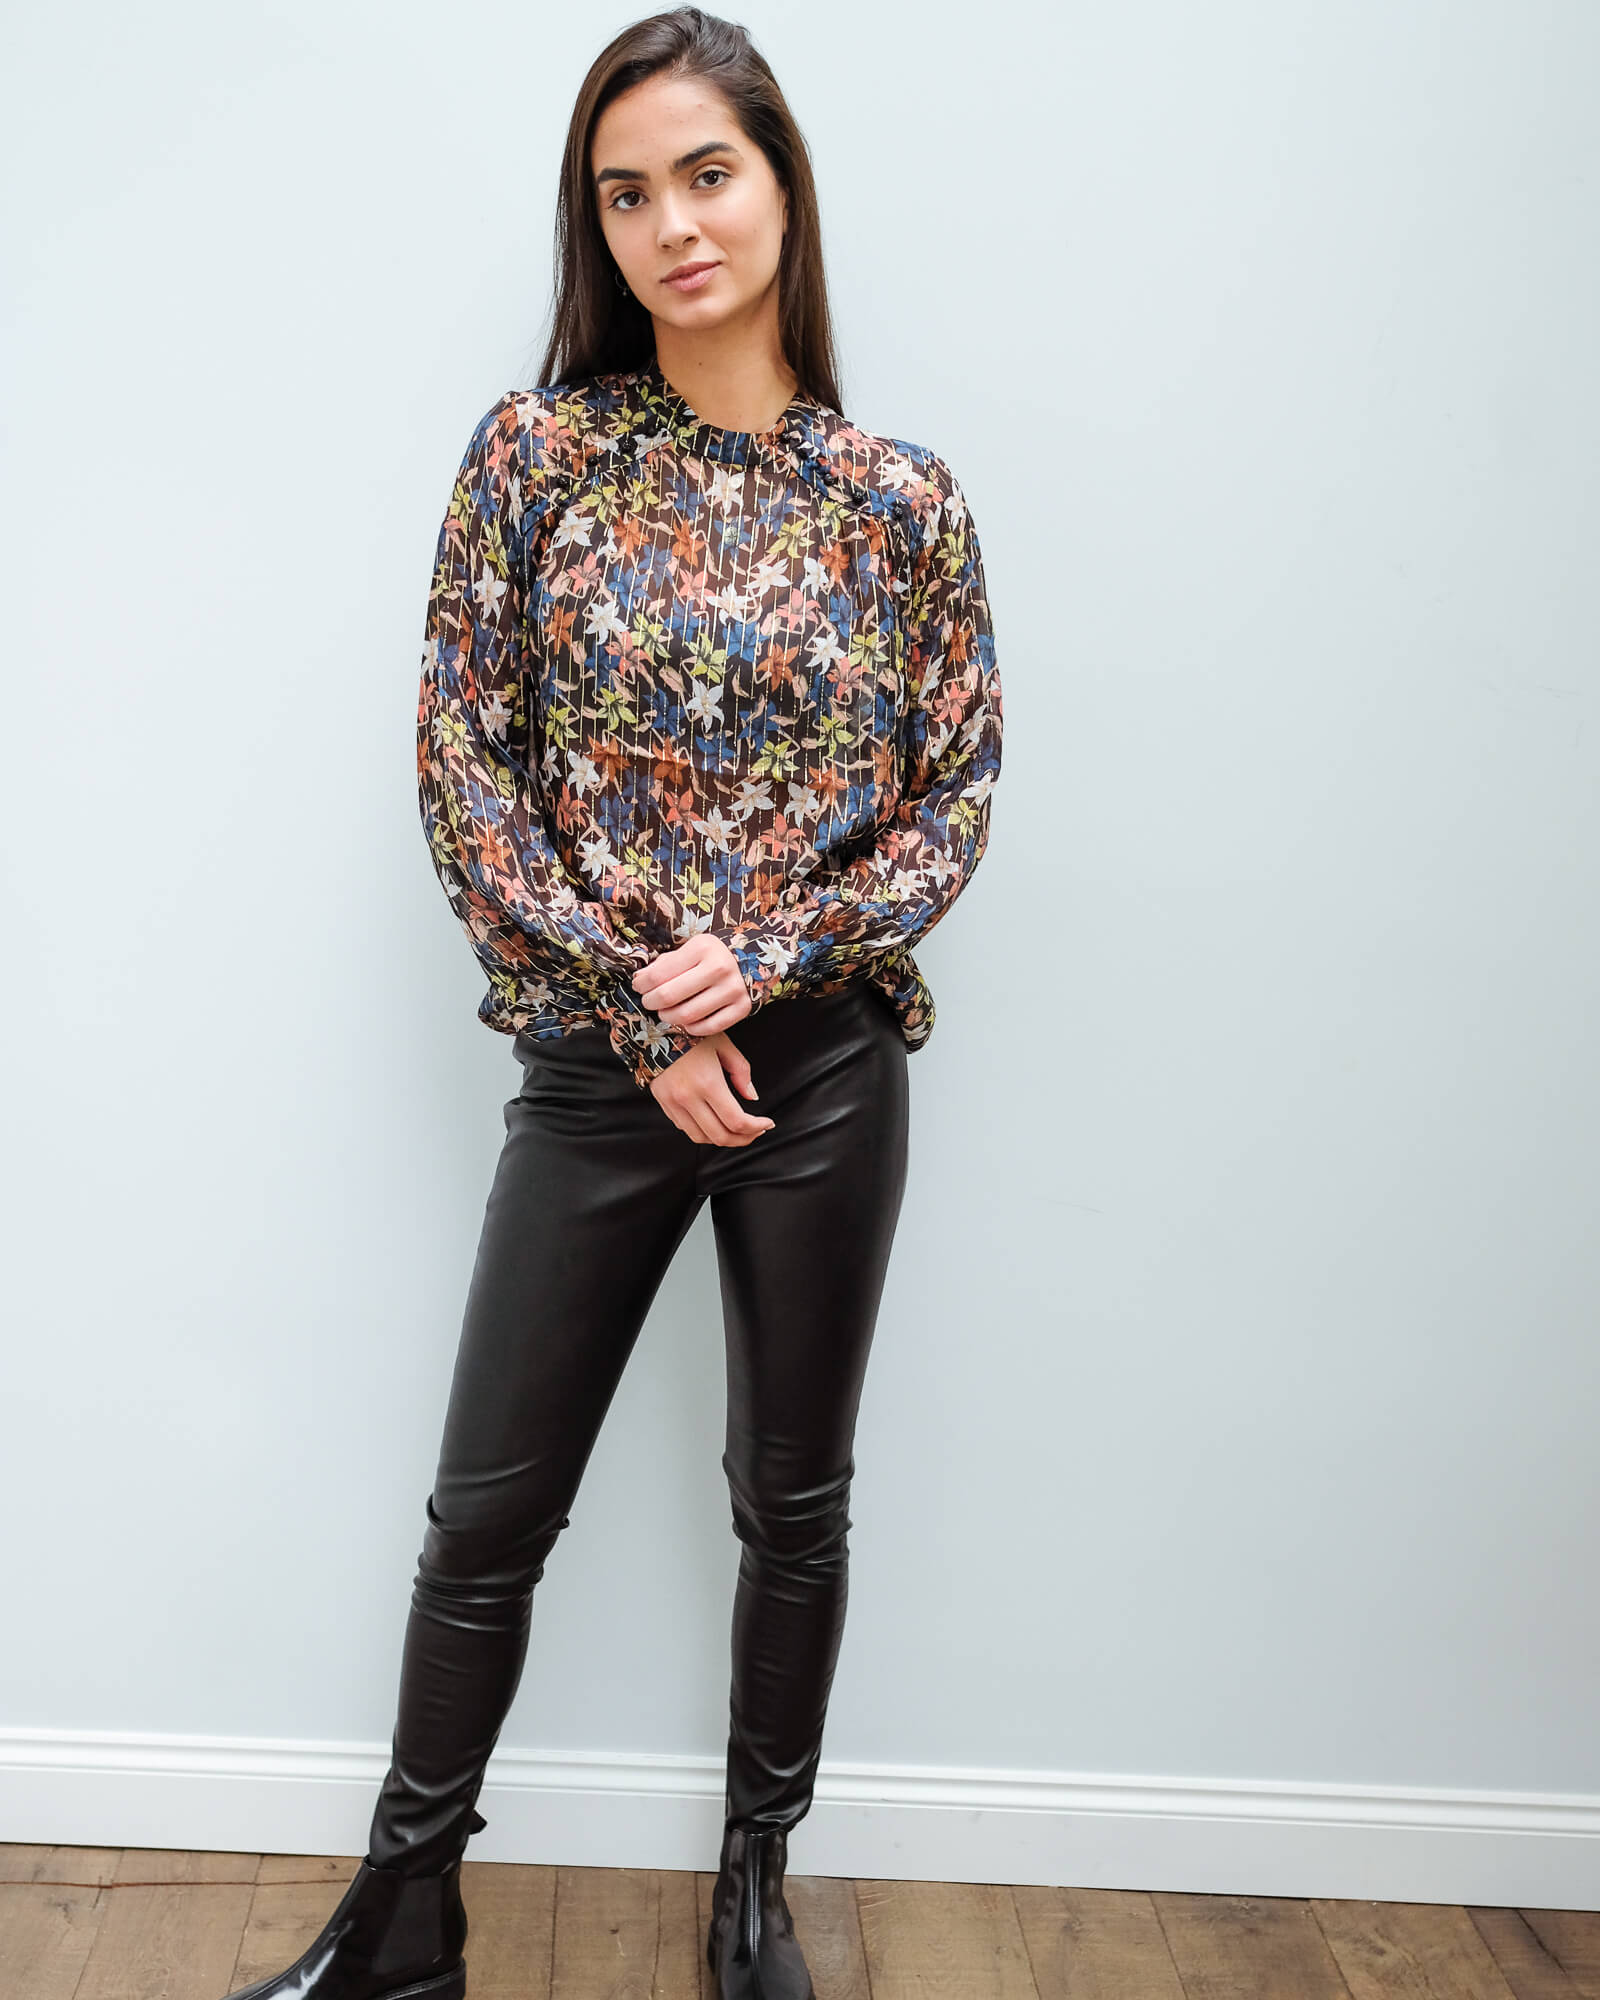 M Kickoff floral blouse in black